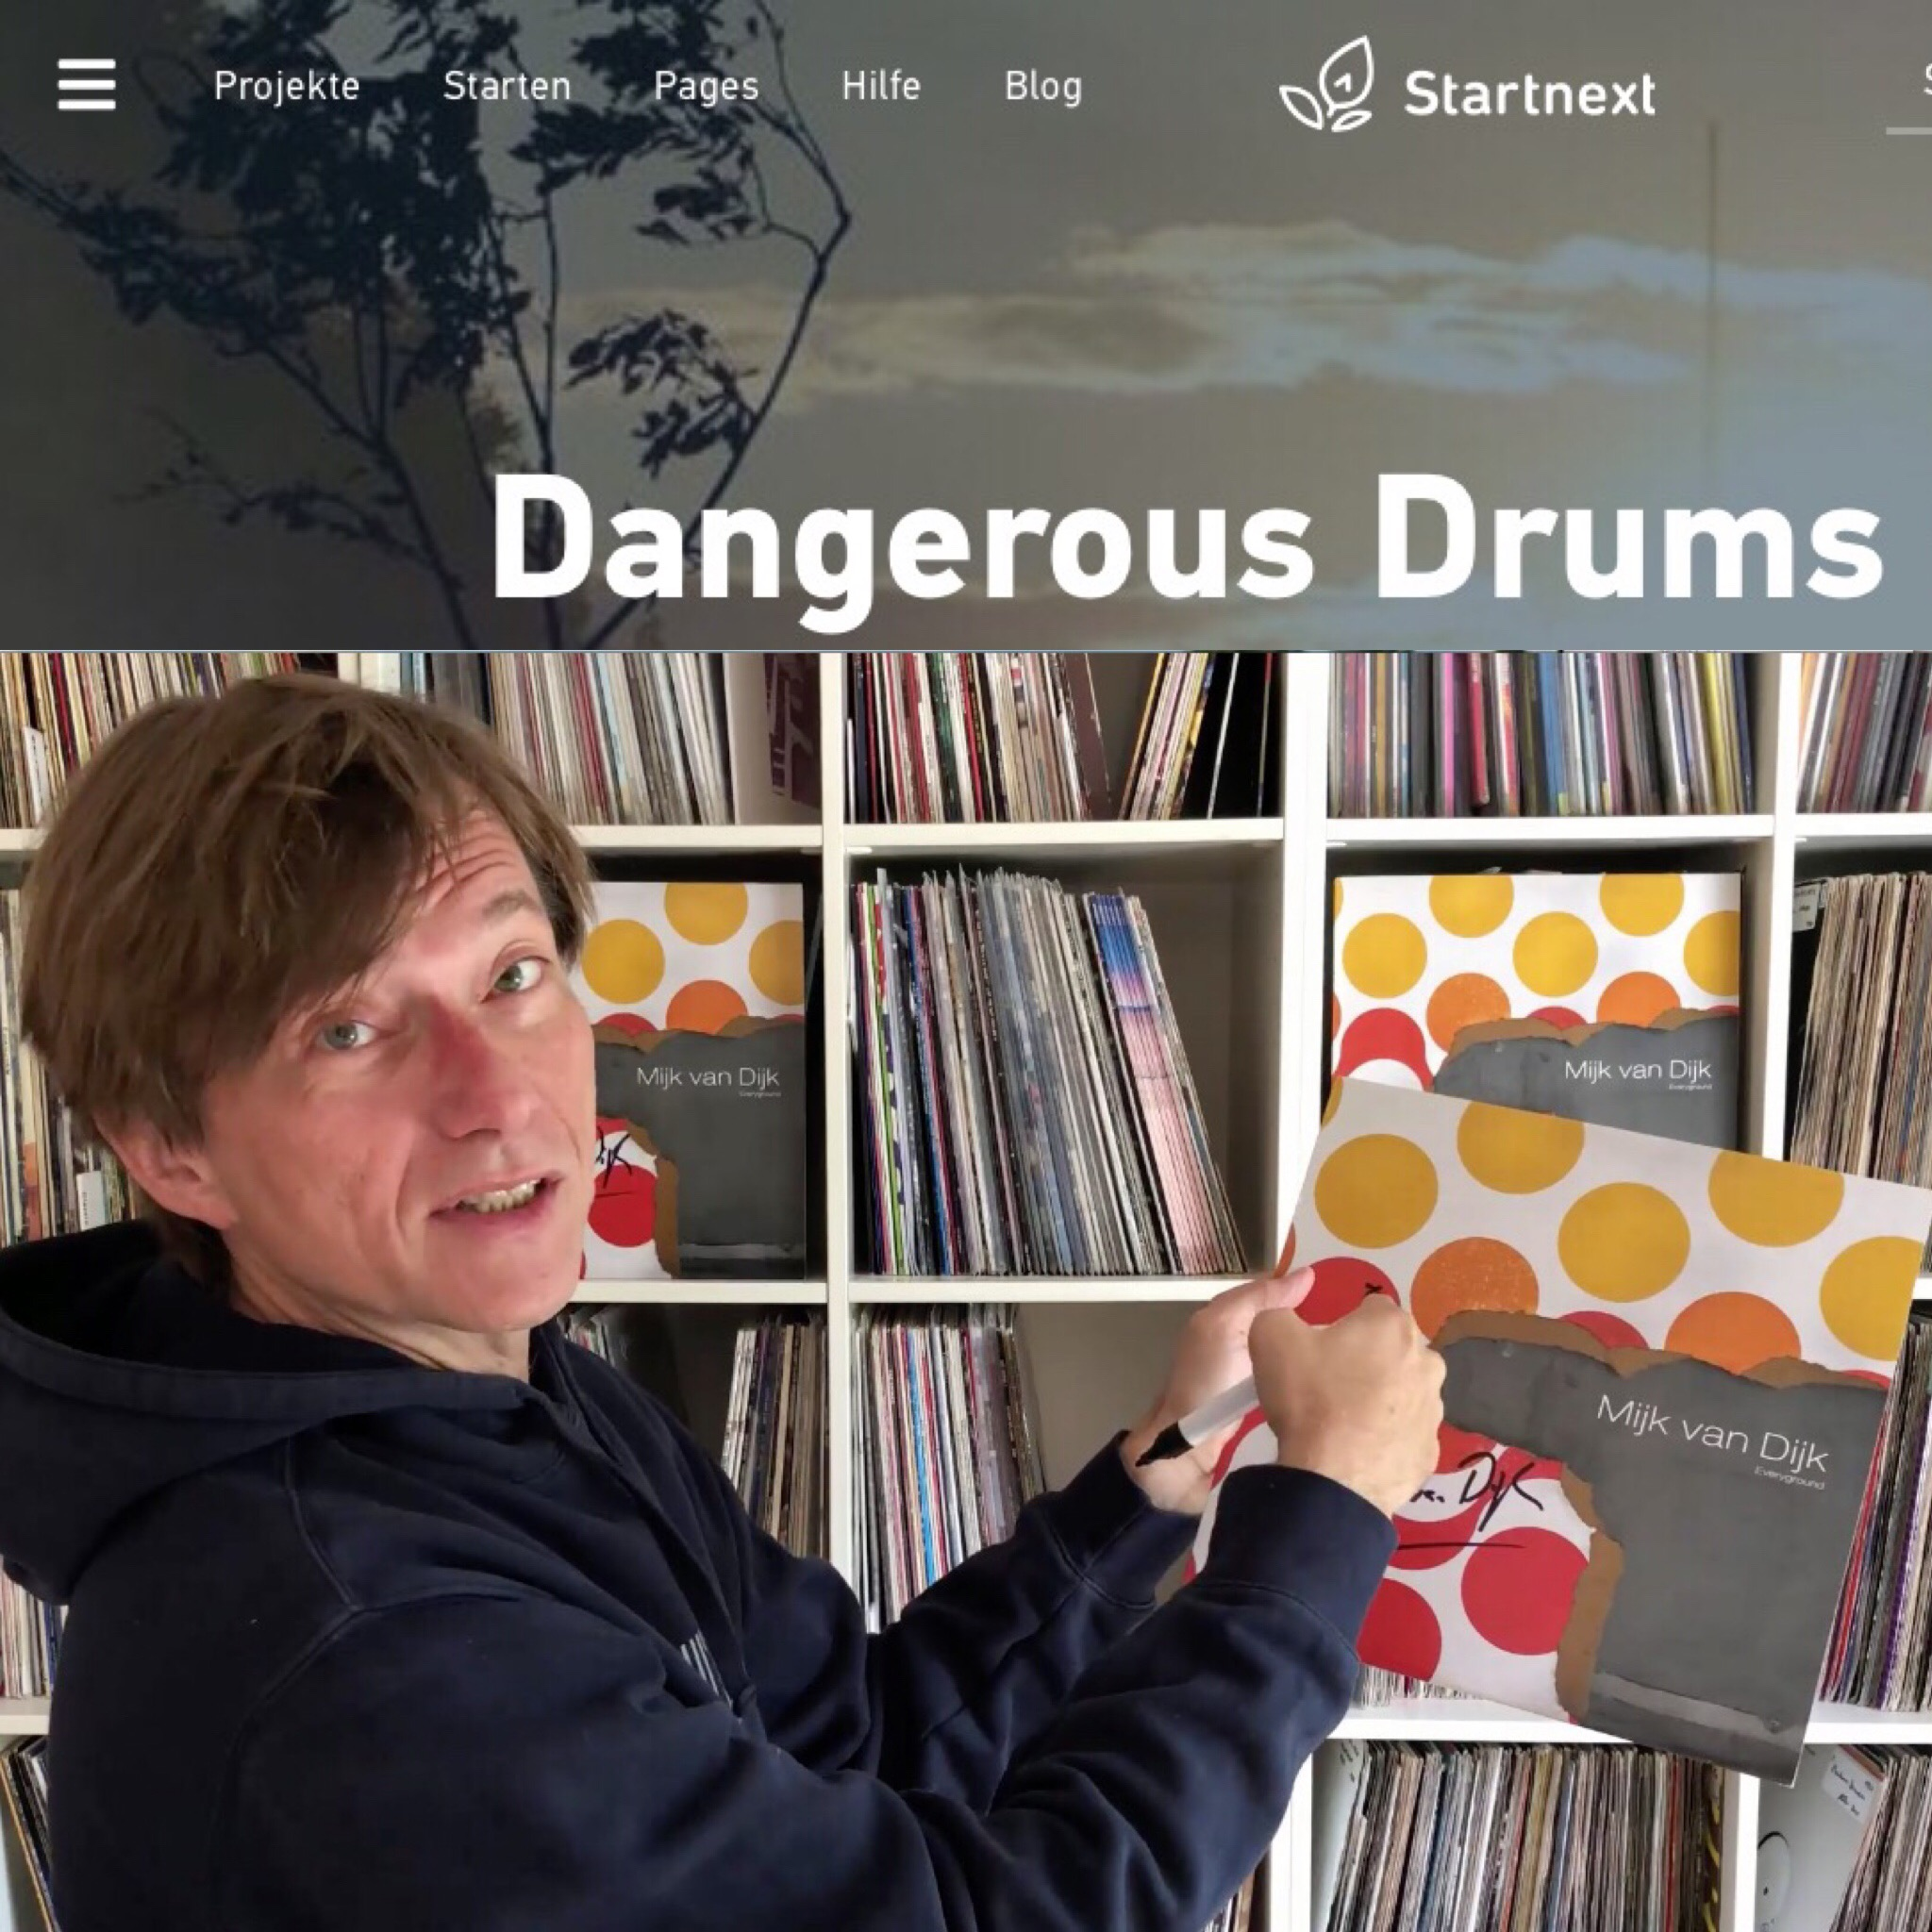 Dangerous Drums Startnext Campaign for Zug der Liebe 2019